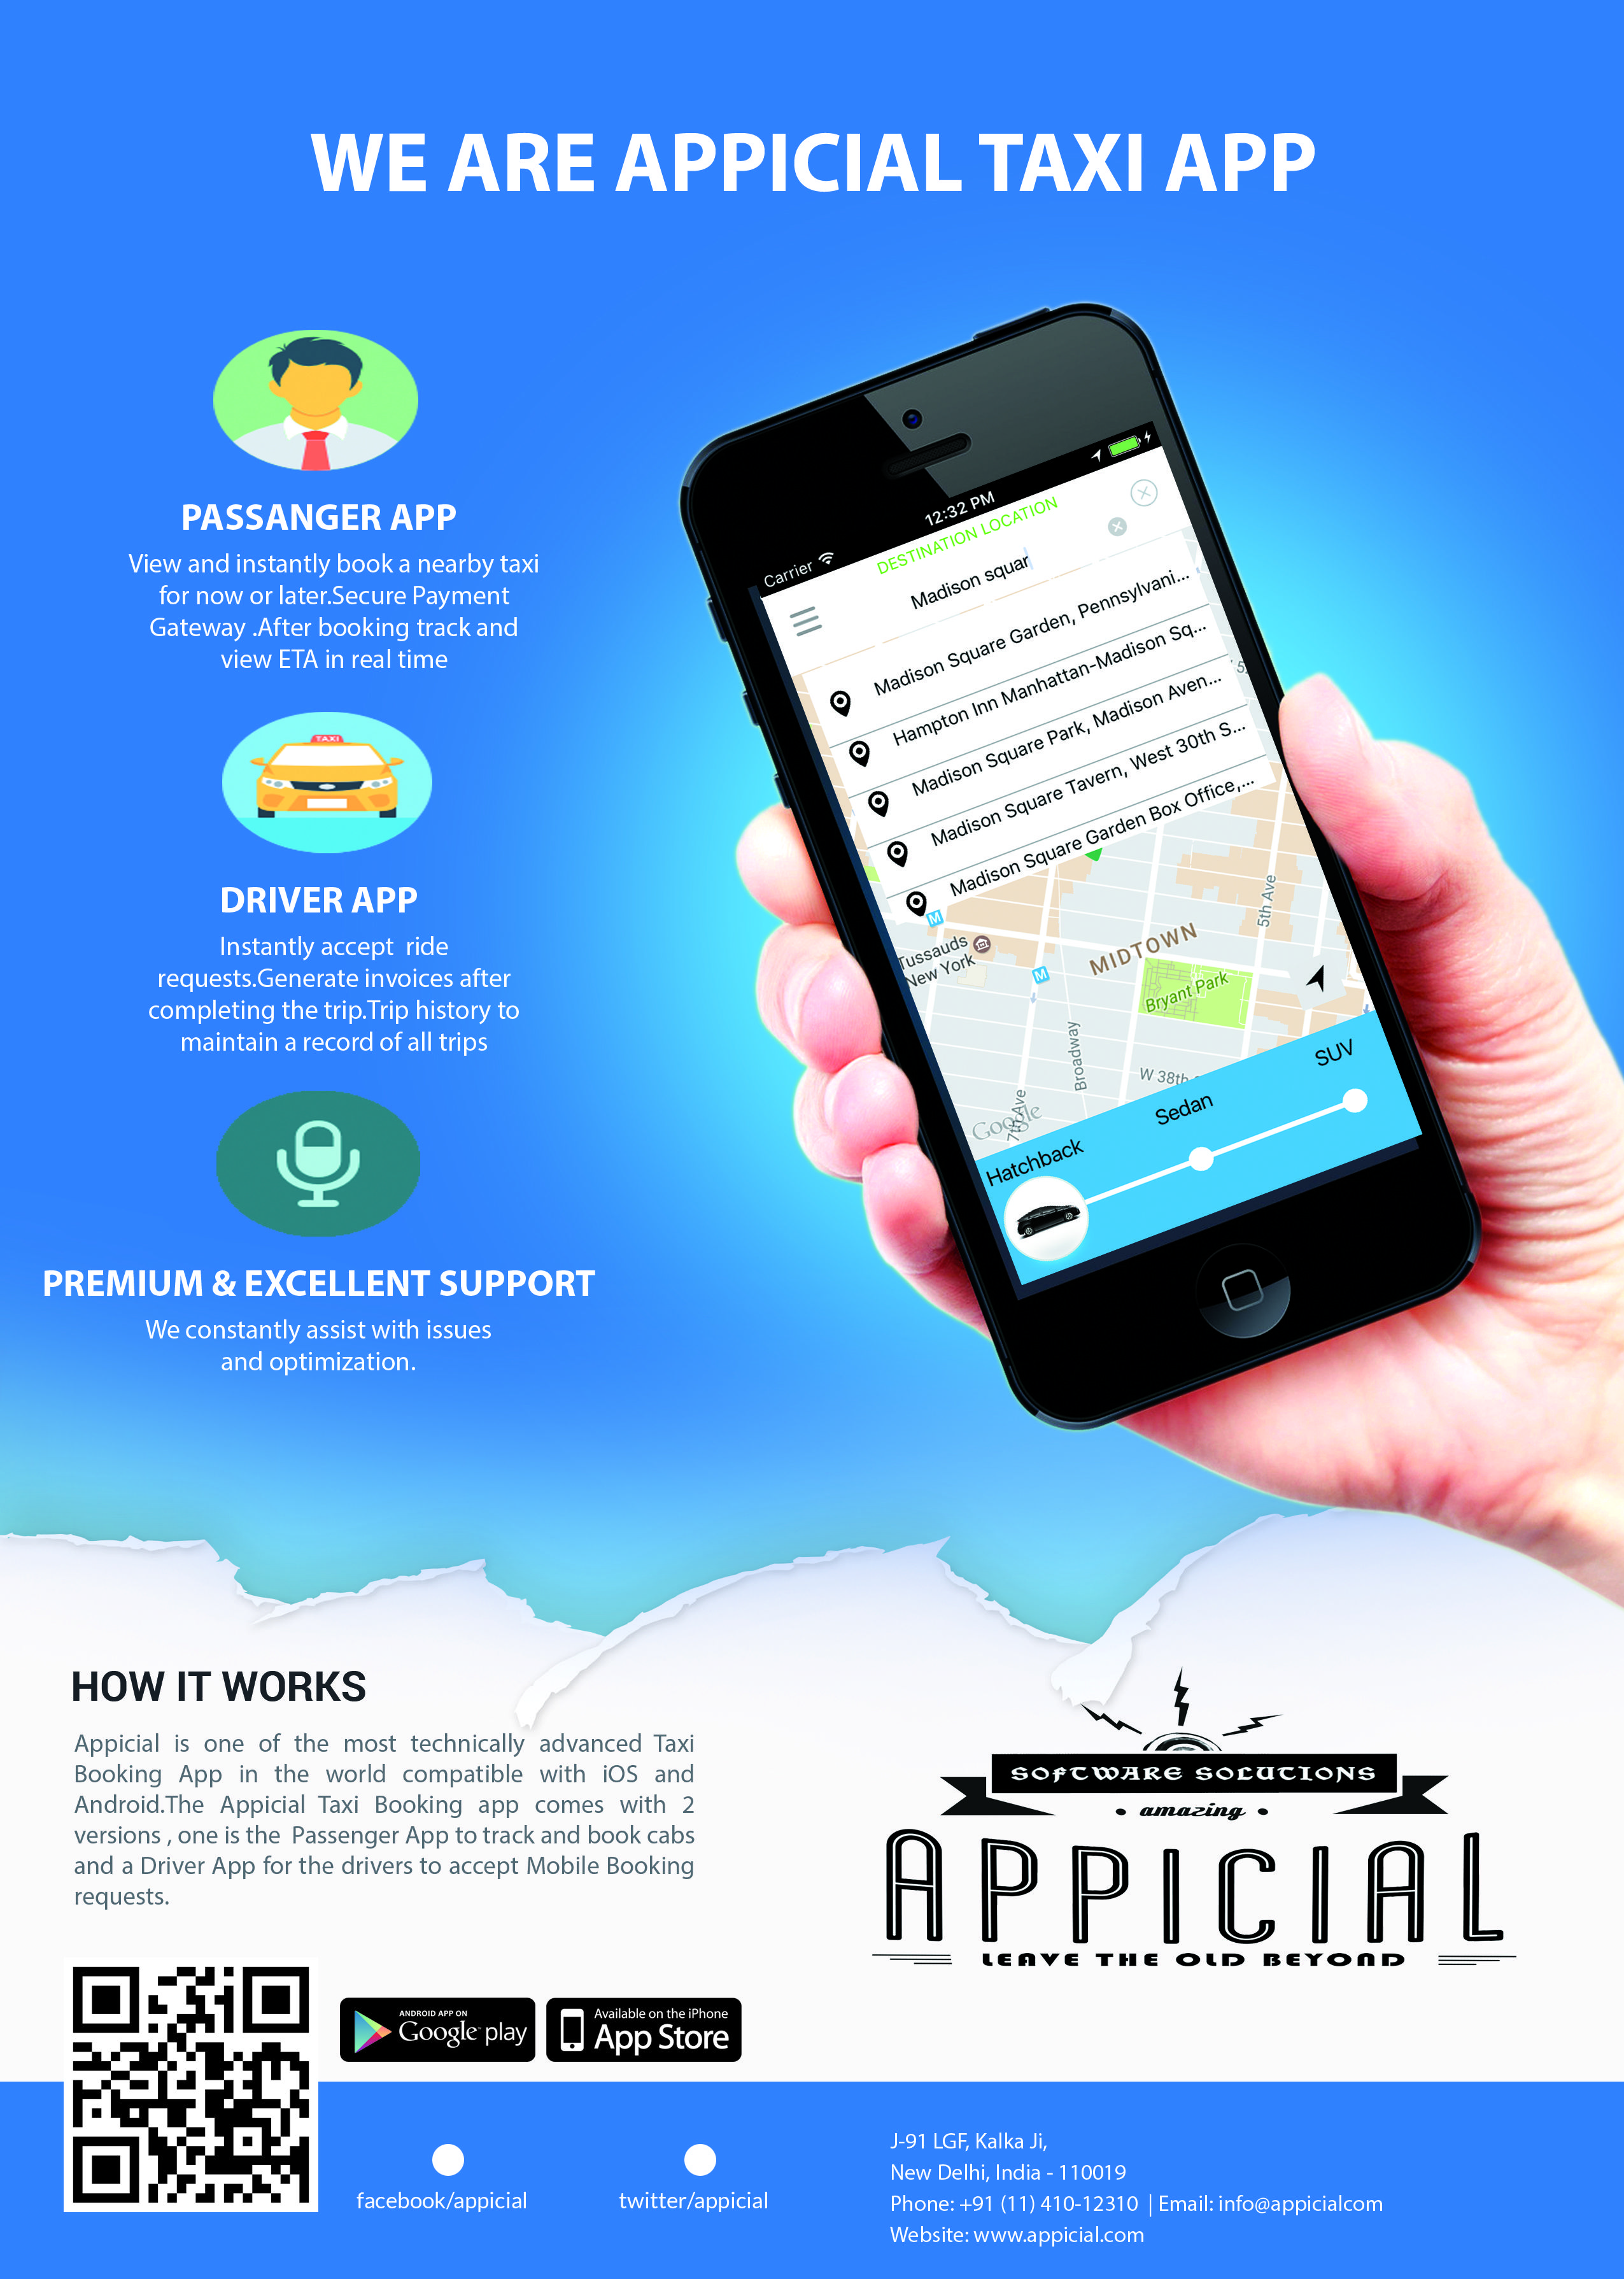 Pin by Grepix Infotech Pvt Ltd on Appicial taxi app solutions | Taxi